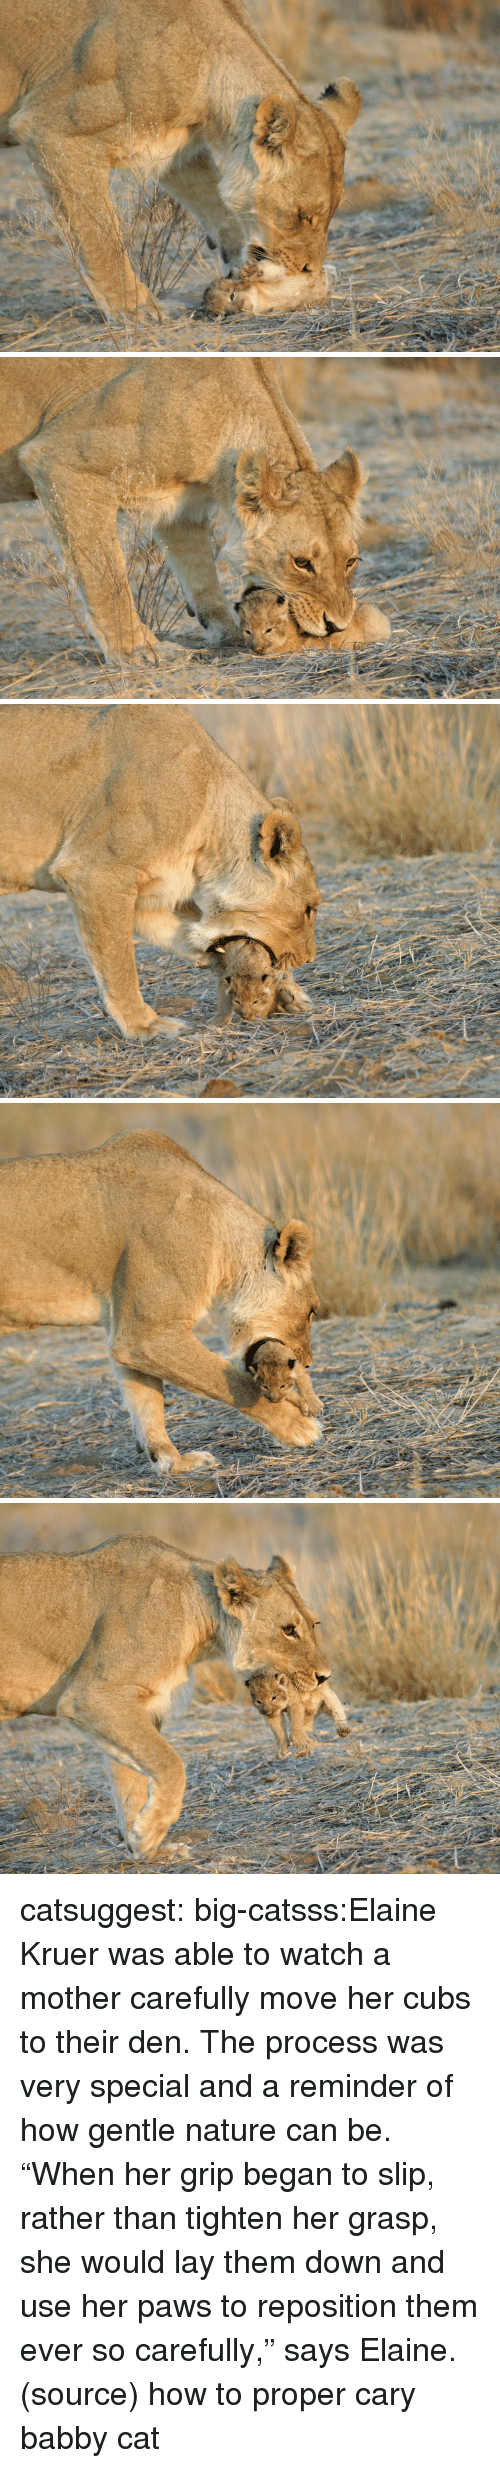 """Target, Tumblr, and Blog: catsuggest:  big-catsss:Elaine Kruer was able to watch a mother carefully move her cubs to their den. The process was very special and a reminder of how gentle nature can be. """"When her grip began to slip, rather than tighten her grasp, she would lay them down and use her paws to reposition them ever so carefully,"""" says Elaine. (source)  how to proper cary babby cat"""